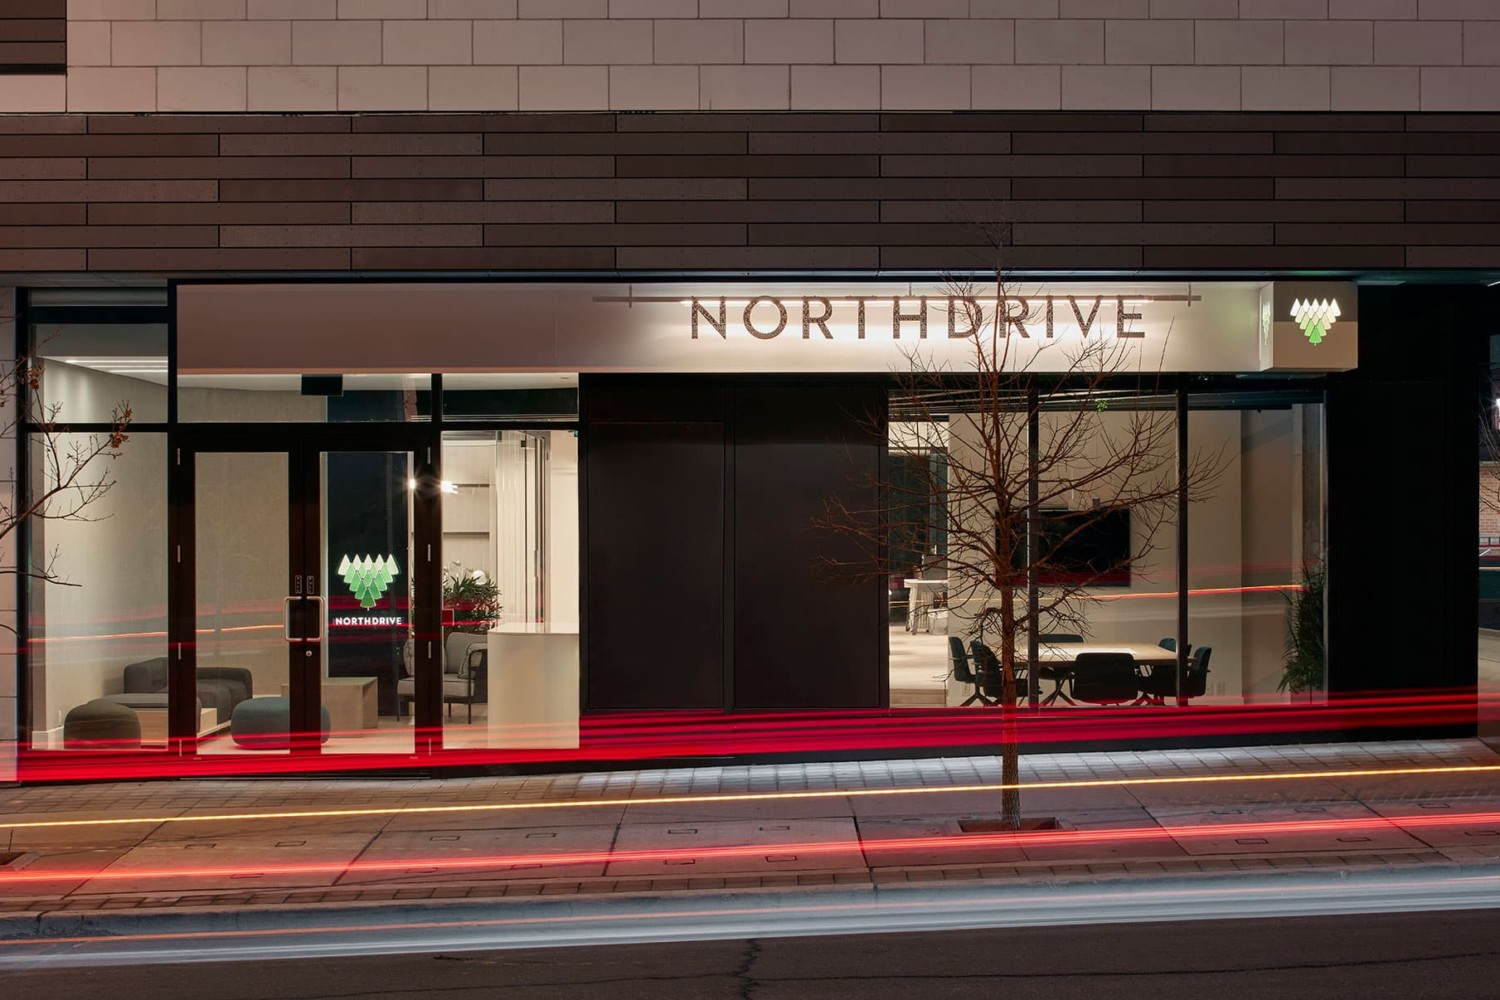 North Drive by Reflect Architecture